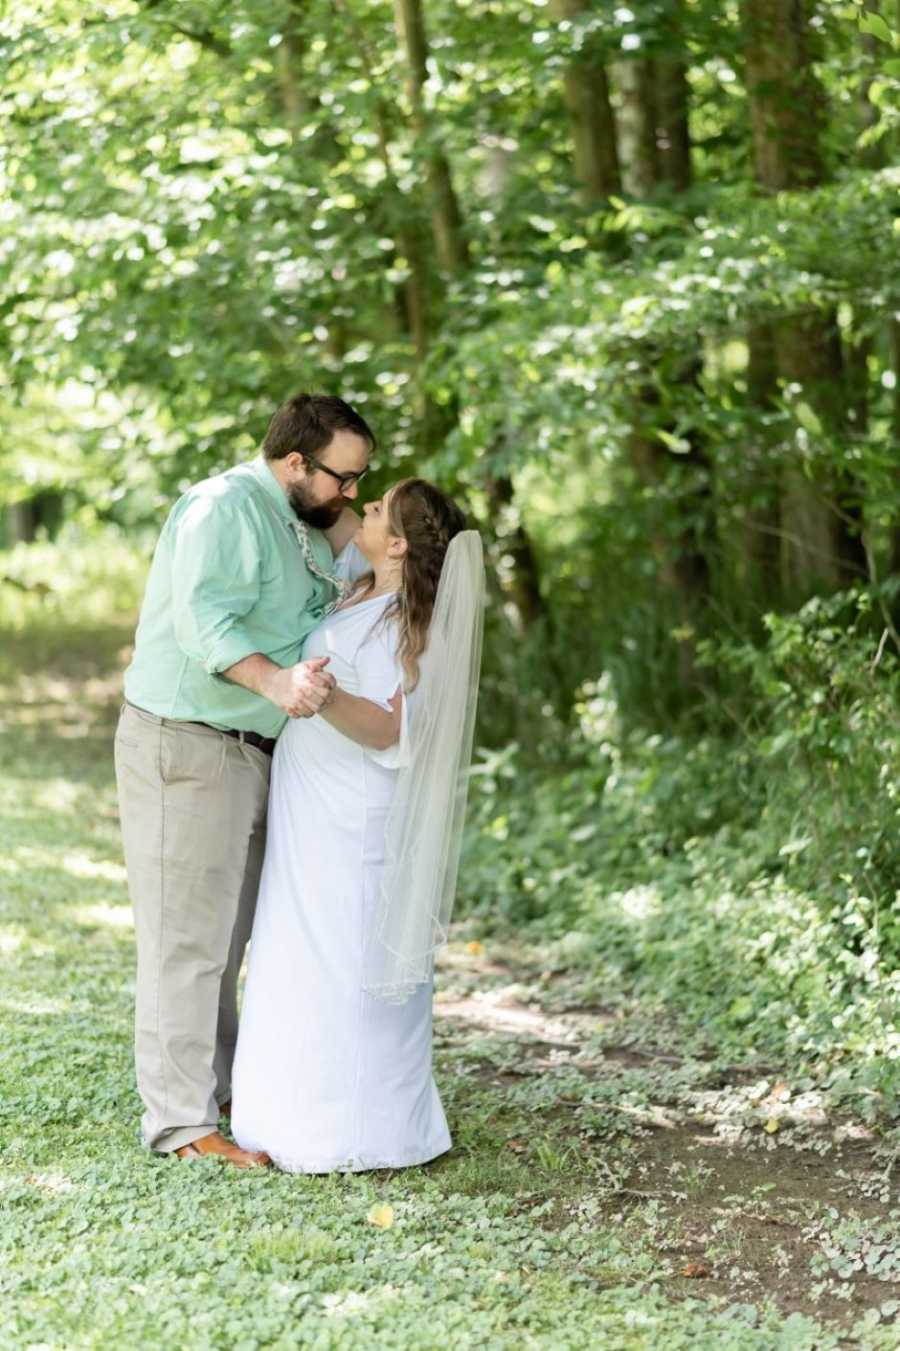 Newly weds share a sweet, intimate moment outside during their wedding photos